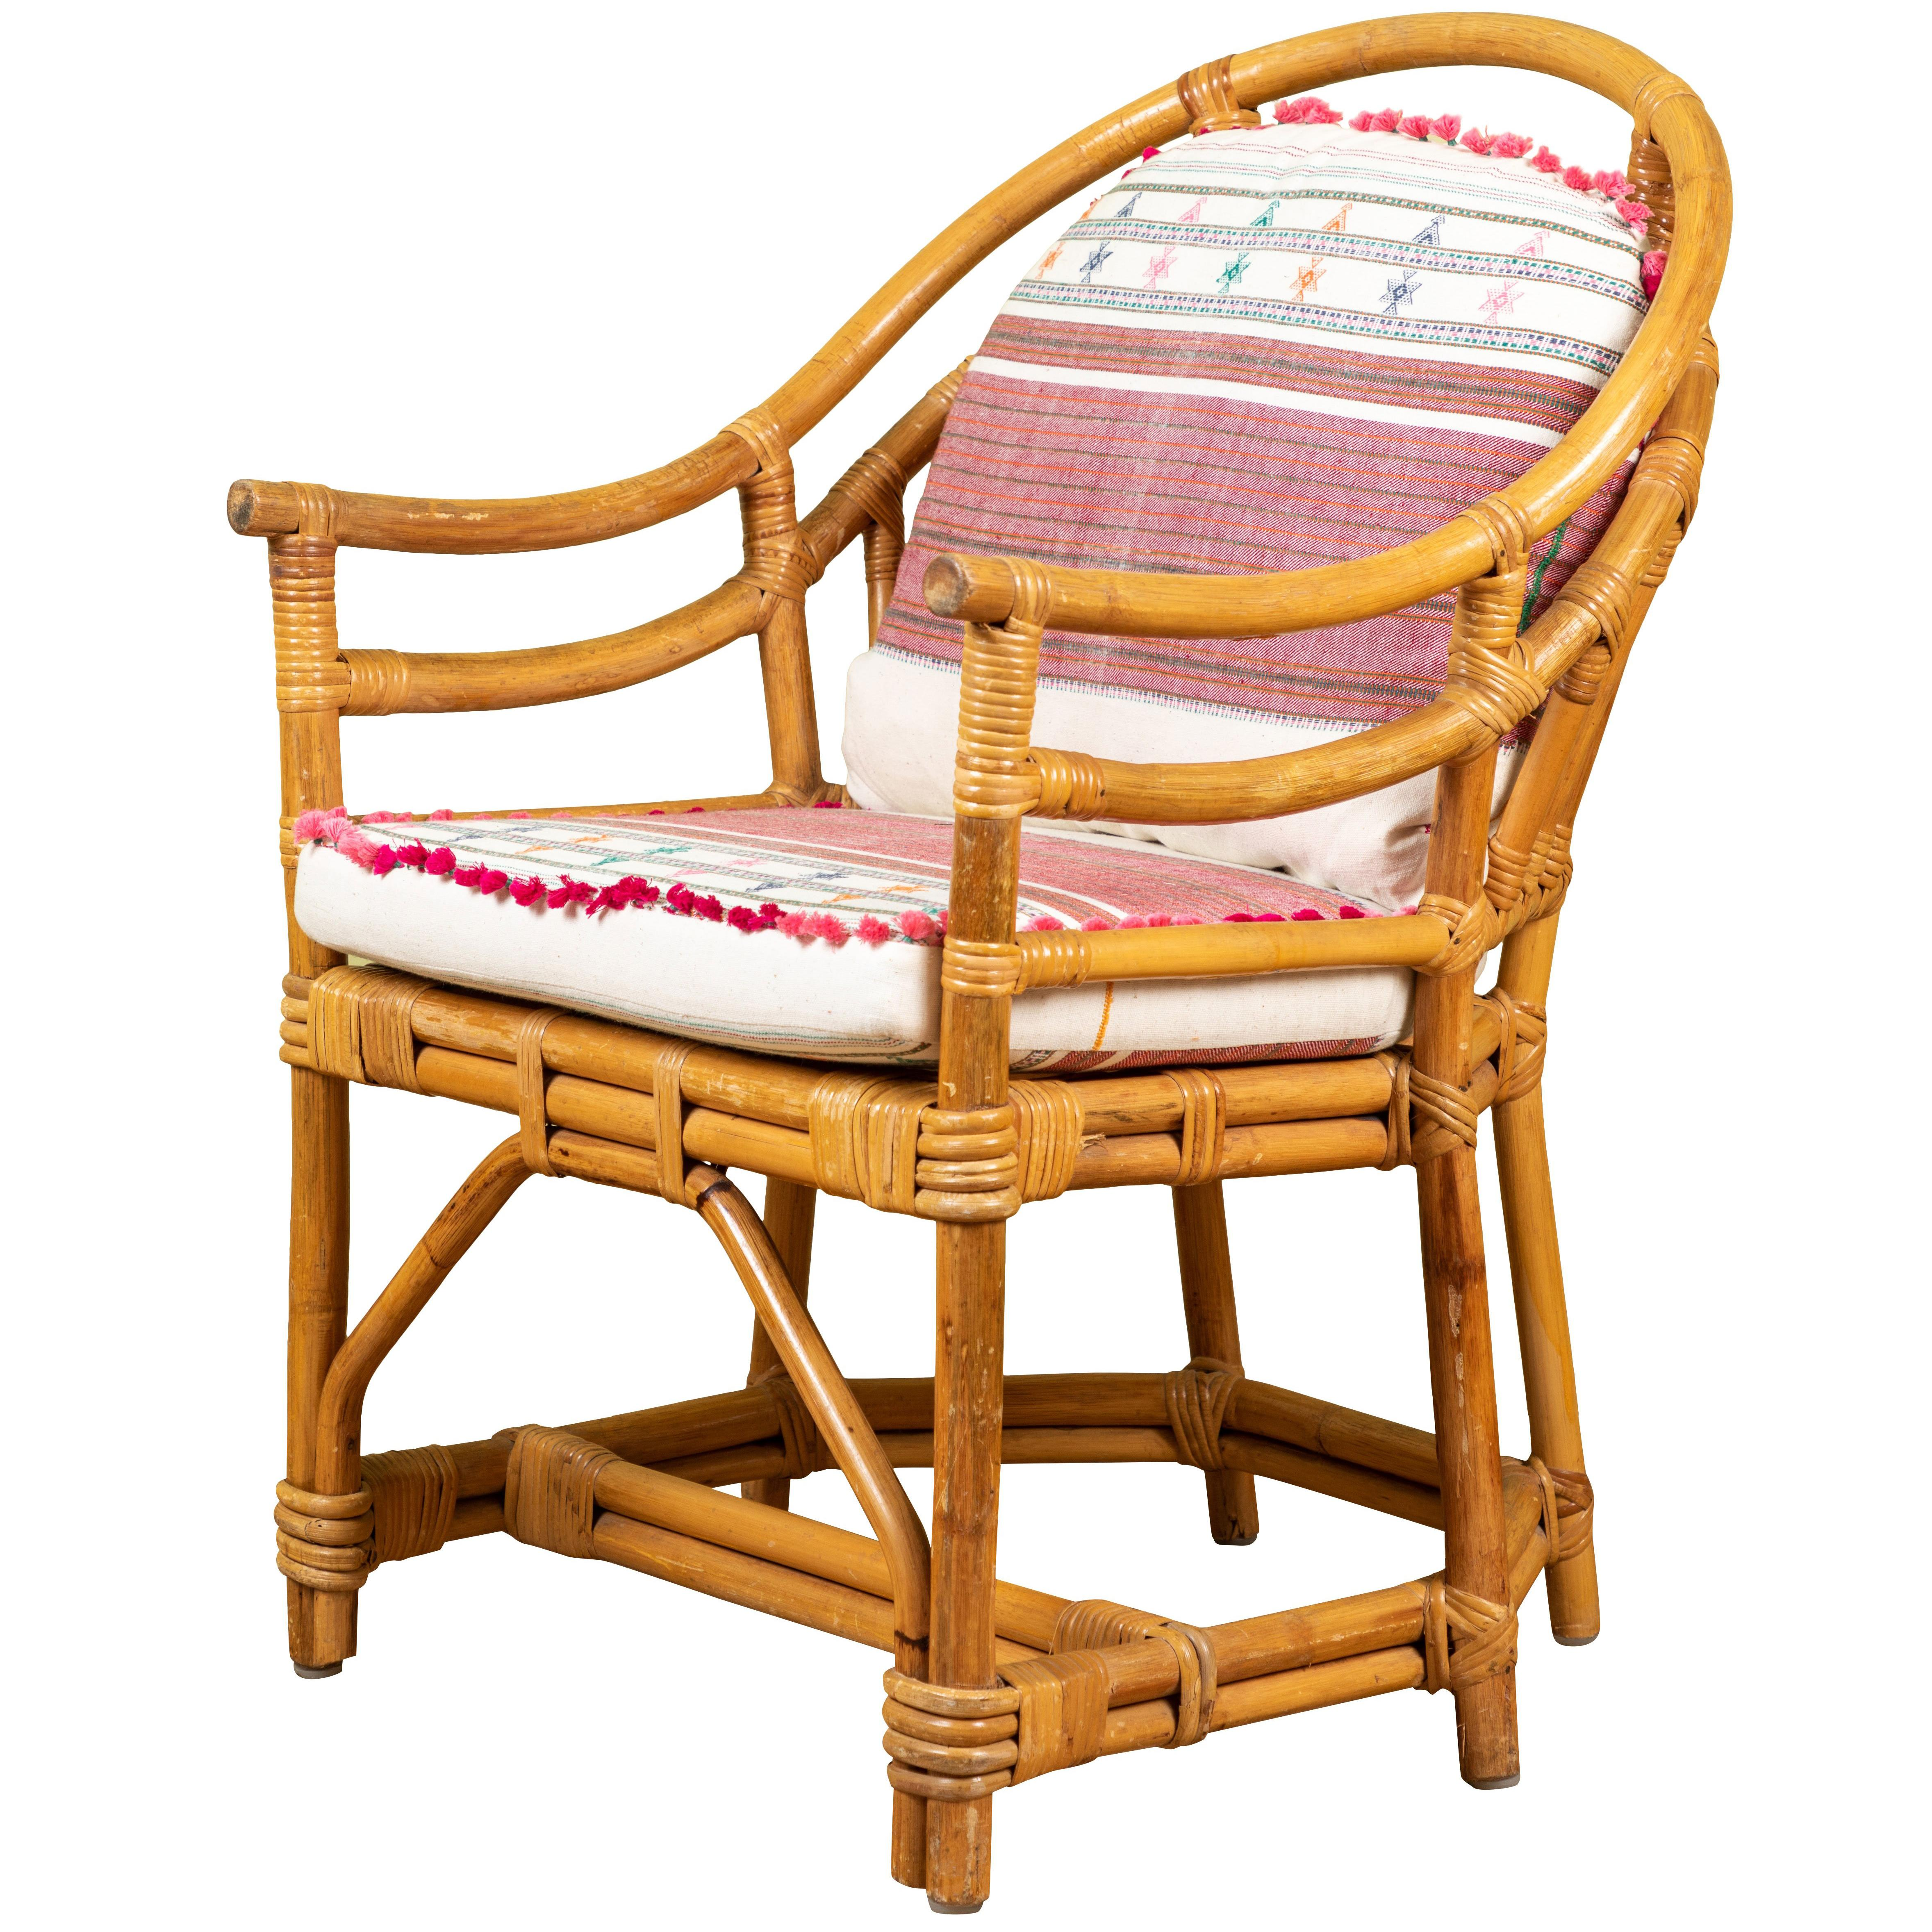 Bon Vintage Rattan Chair With Injiri Cushions For Sale